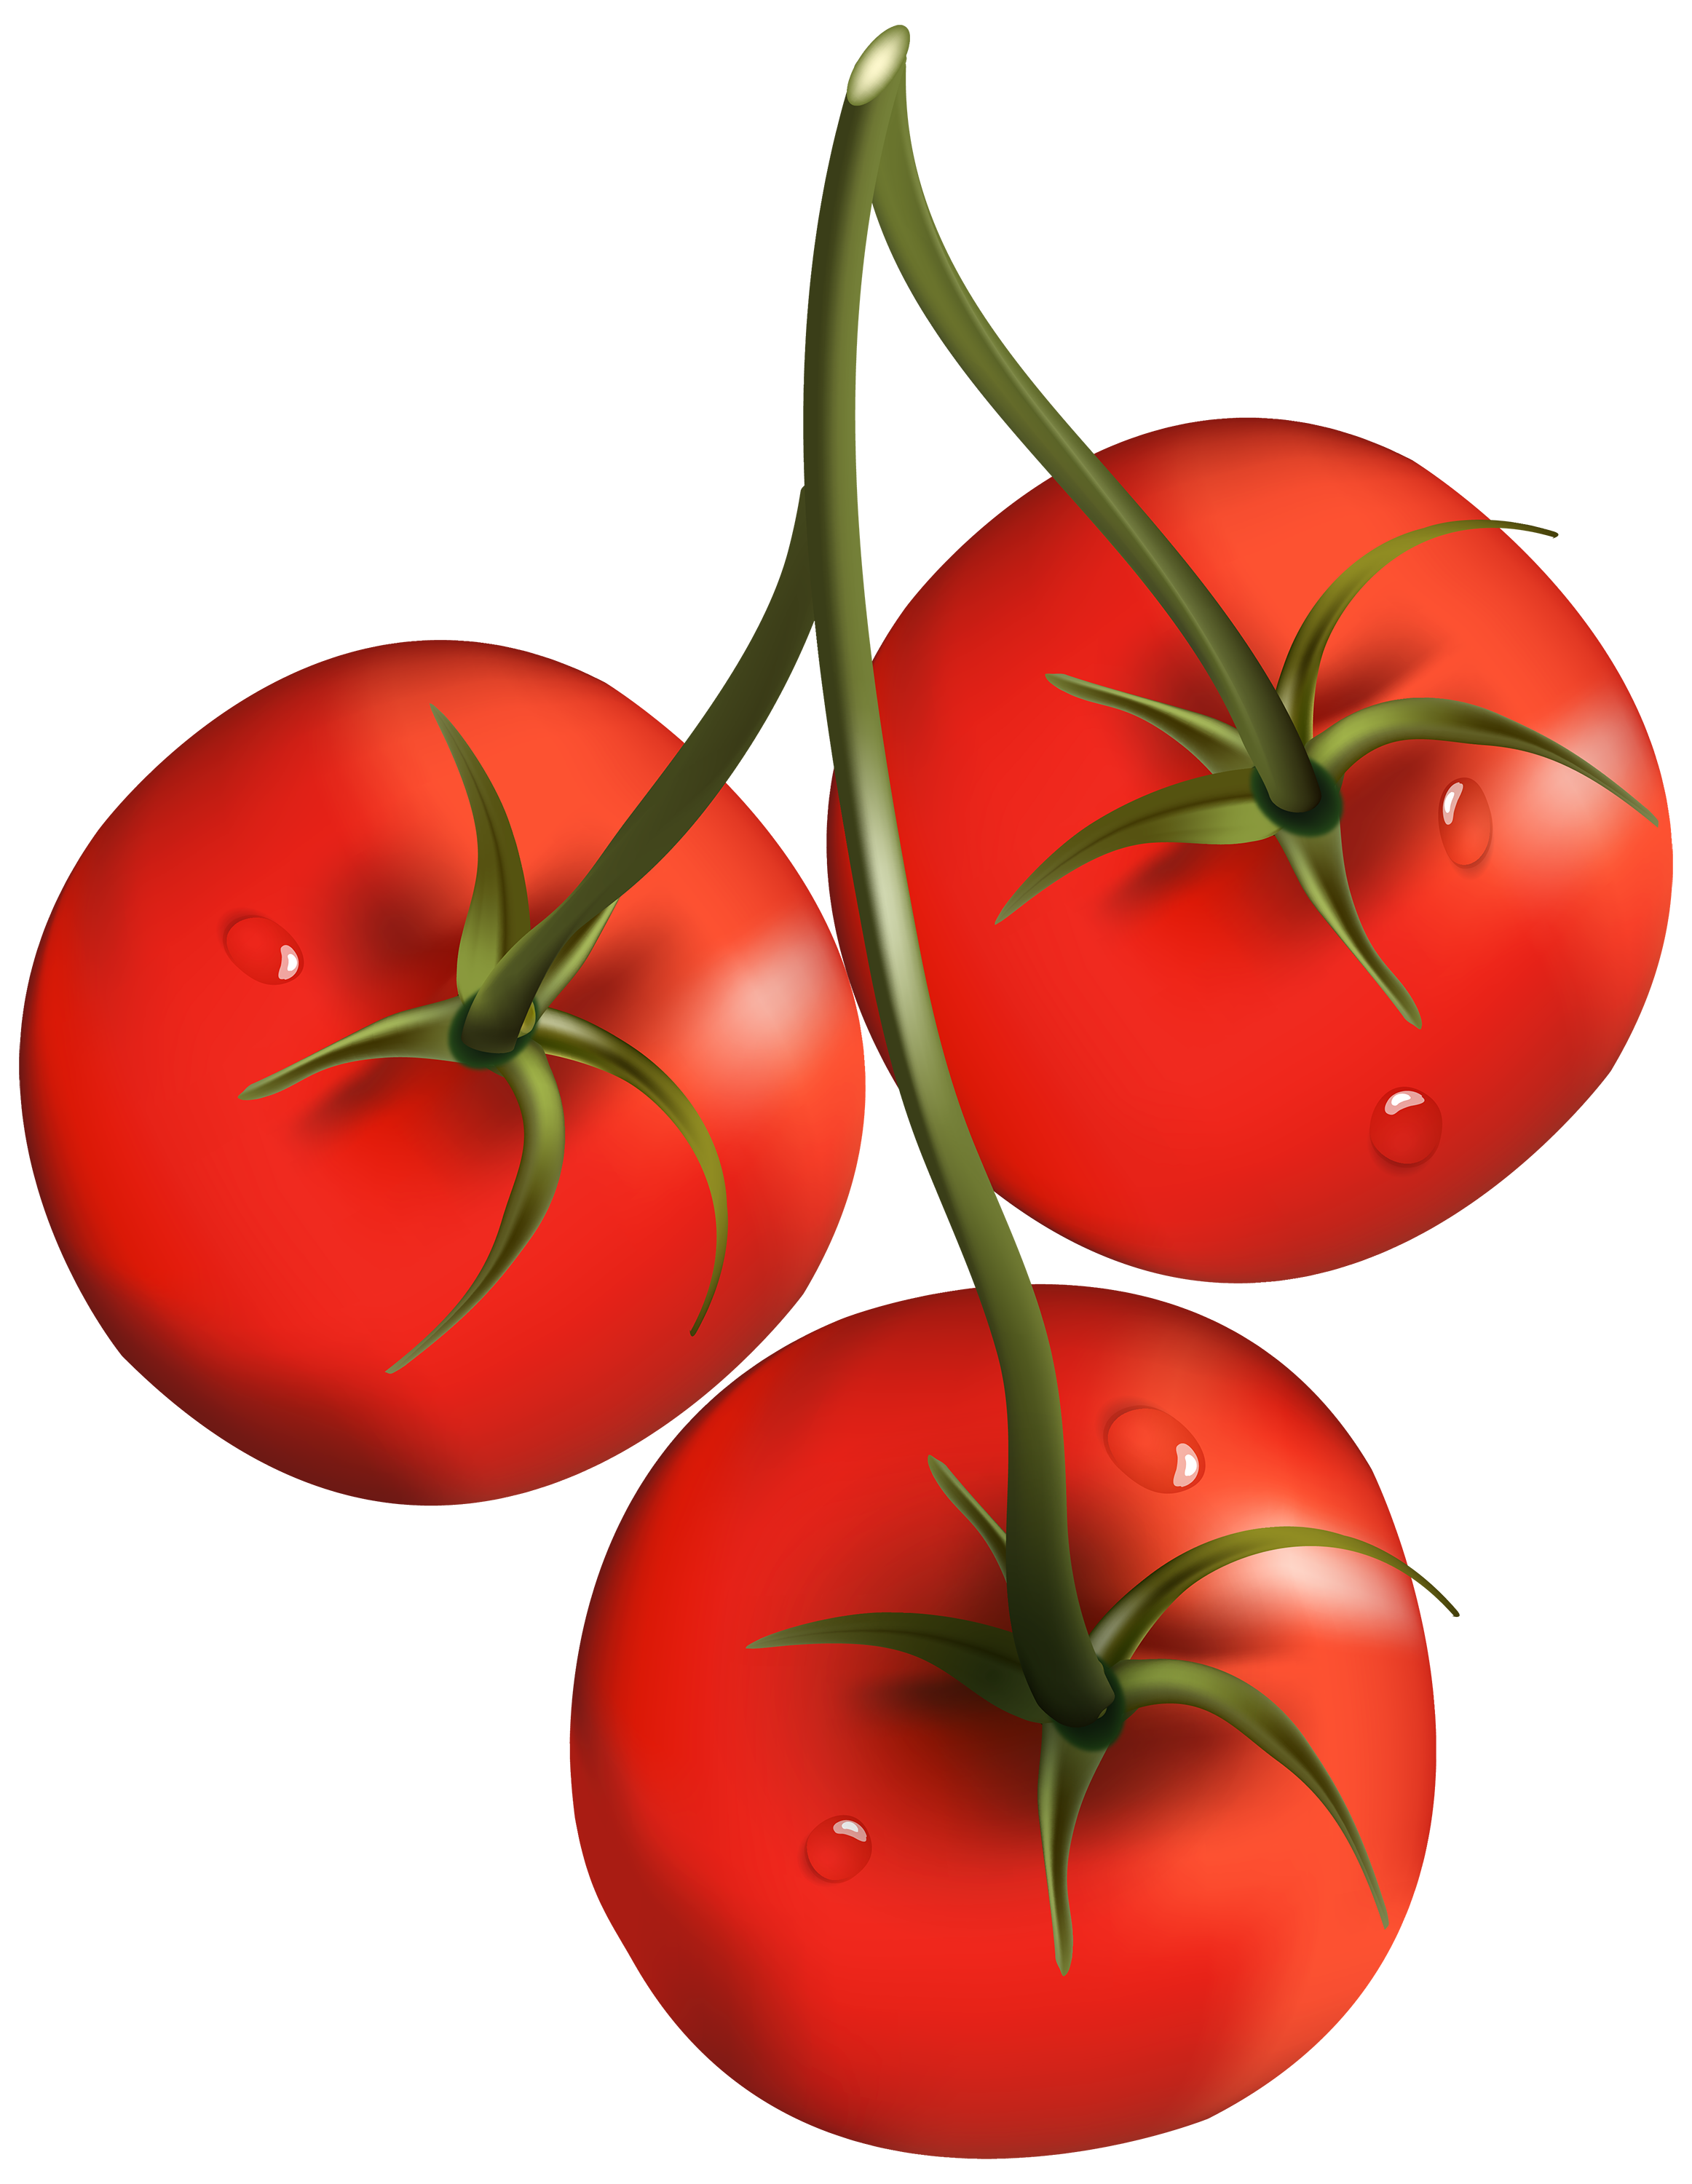 clip art royalty free library Frames illustrations hd images. Tomato clipart.